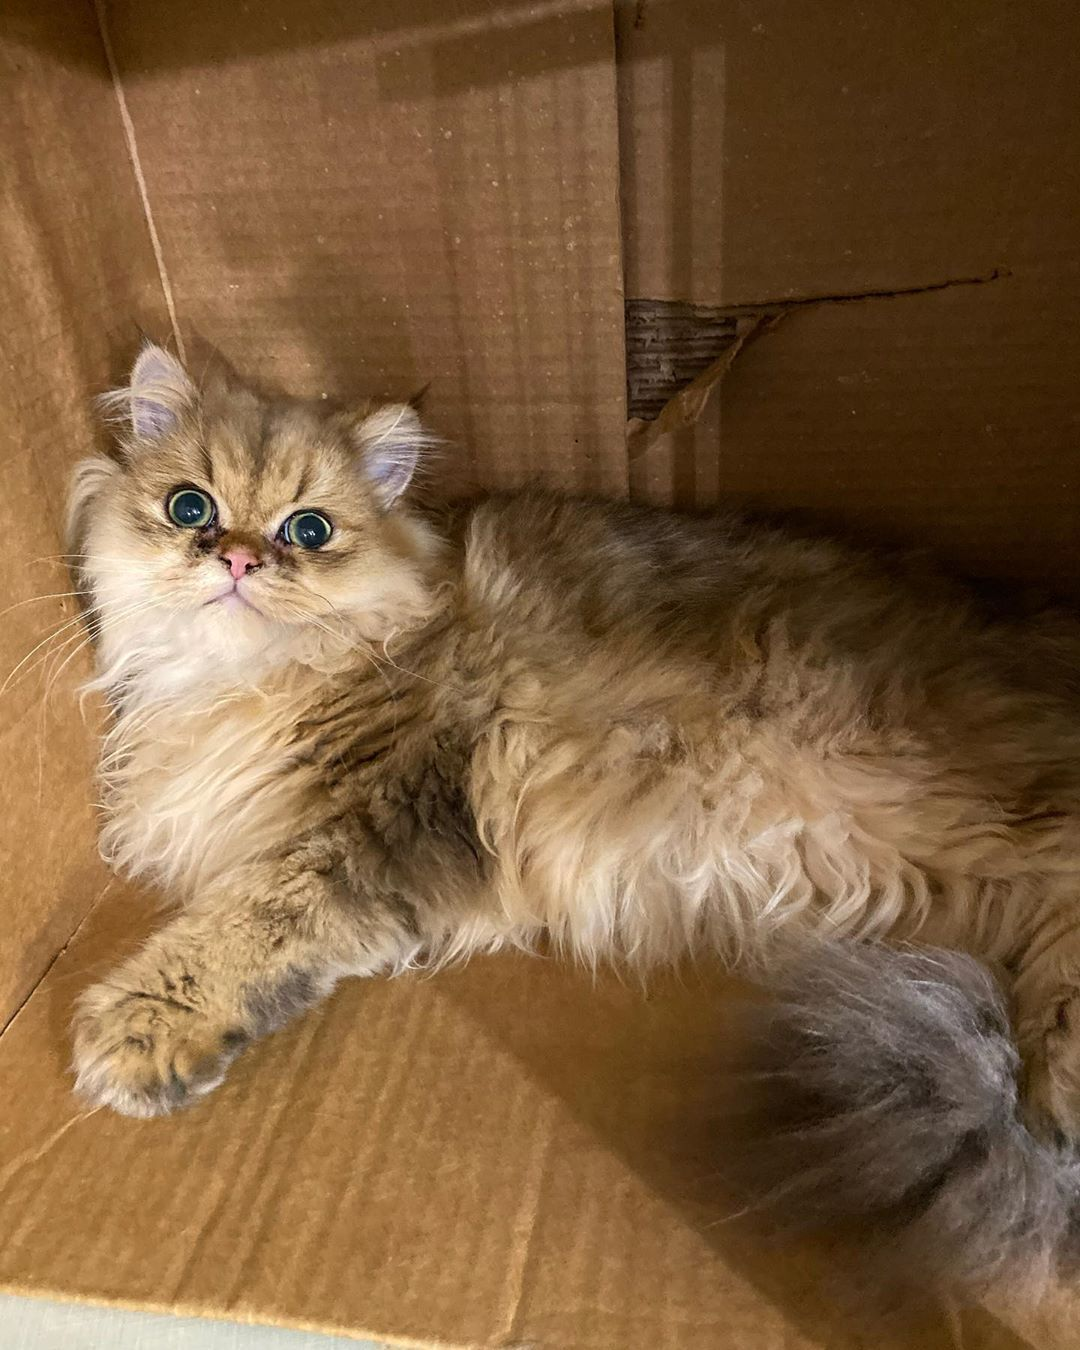 When your healthy cat food comes in a box ... sleep in it!!!! 🧡😹🐾 #cats #cat #kitten #kittens #persian #persiancat #persiancatsofinstagram #persiancatstagram #healthyfood #healthydiet #healthyrecipes #catmom #animals #cute #cuteanimals #cutenessoverload #longhaircat #catnip